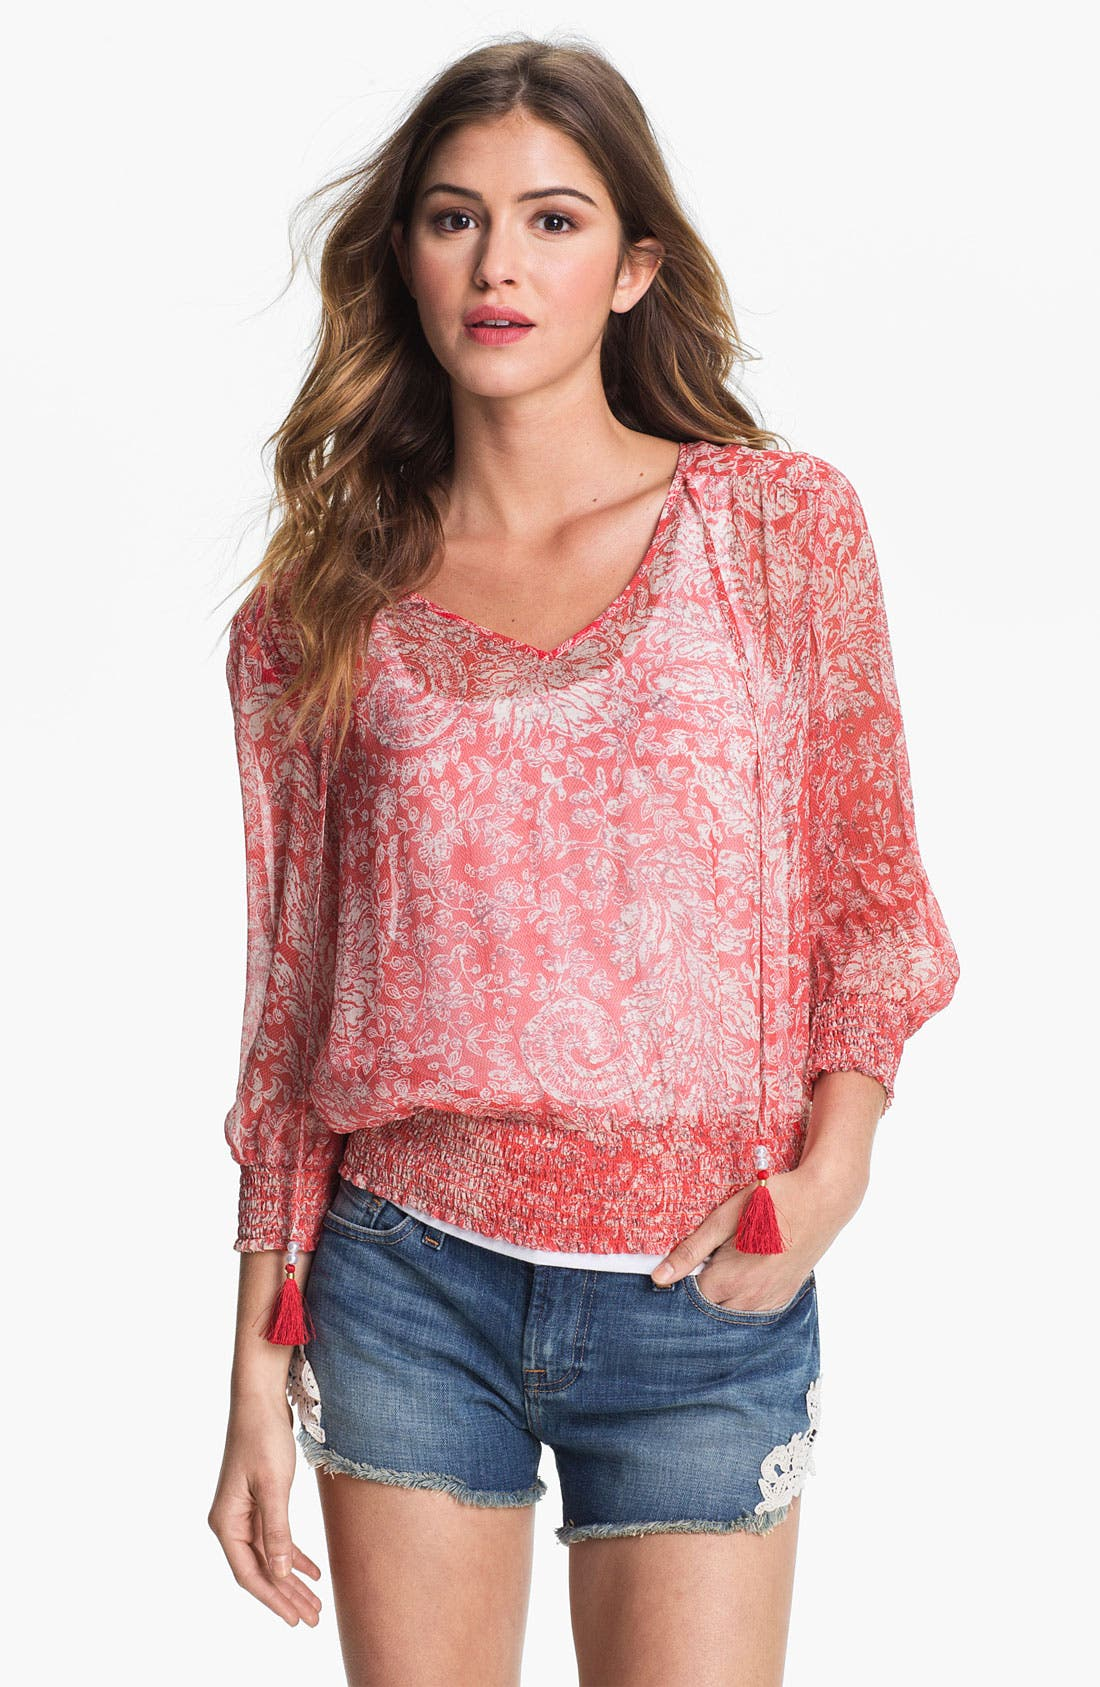 Alternate Image 1 Selected - Lucky Brand 'Palisades - Knotted Flowers' Top (Online Exclusive)